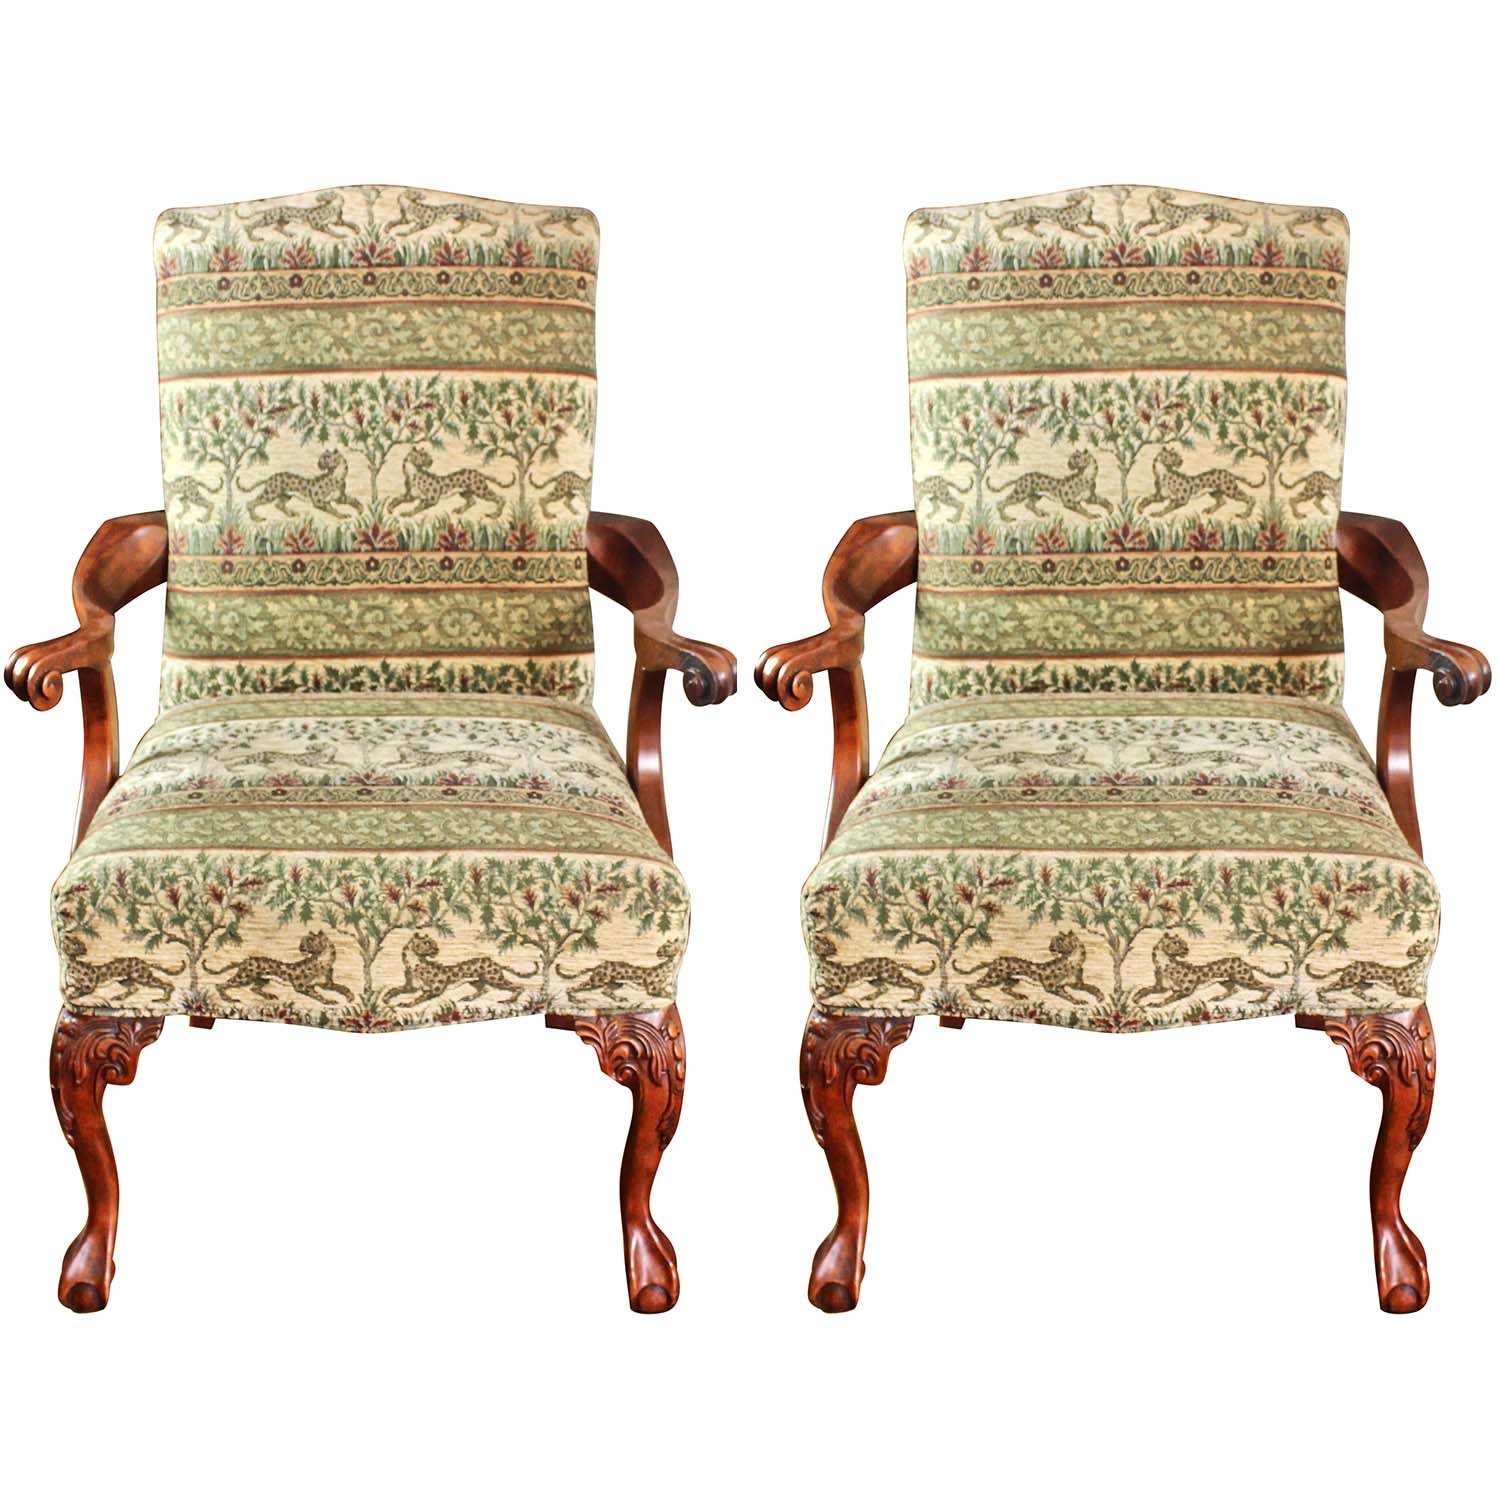 Pair of Vintage Carved Ball-and-Claw Upholstered Armchairs